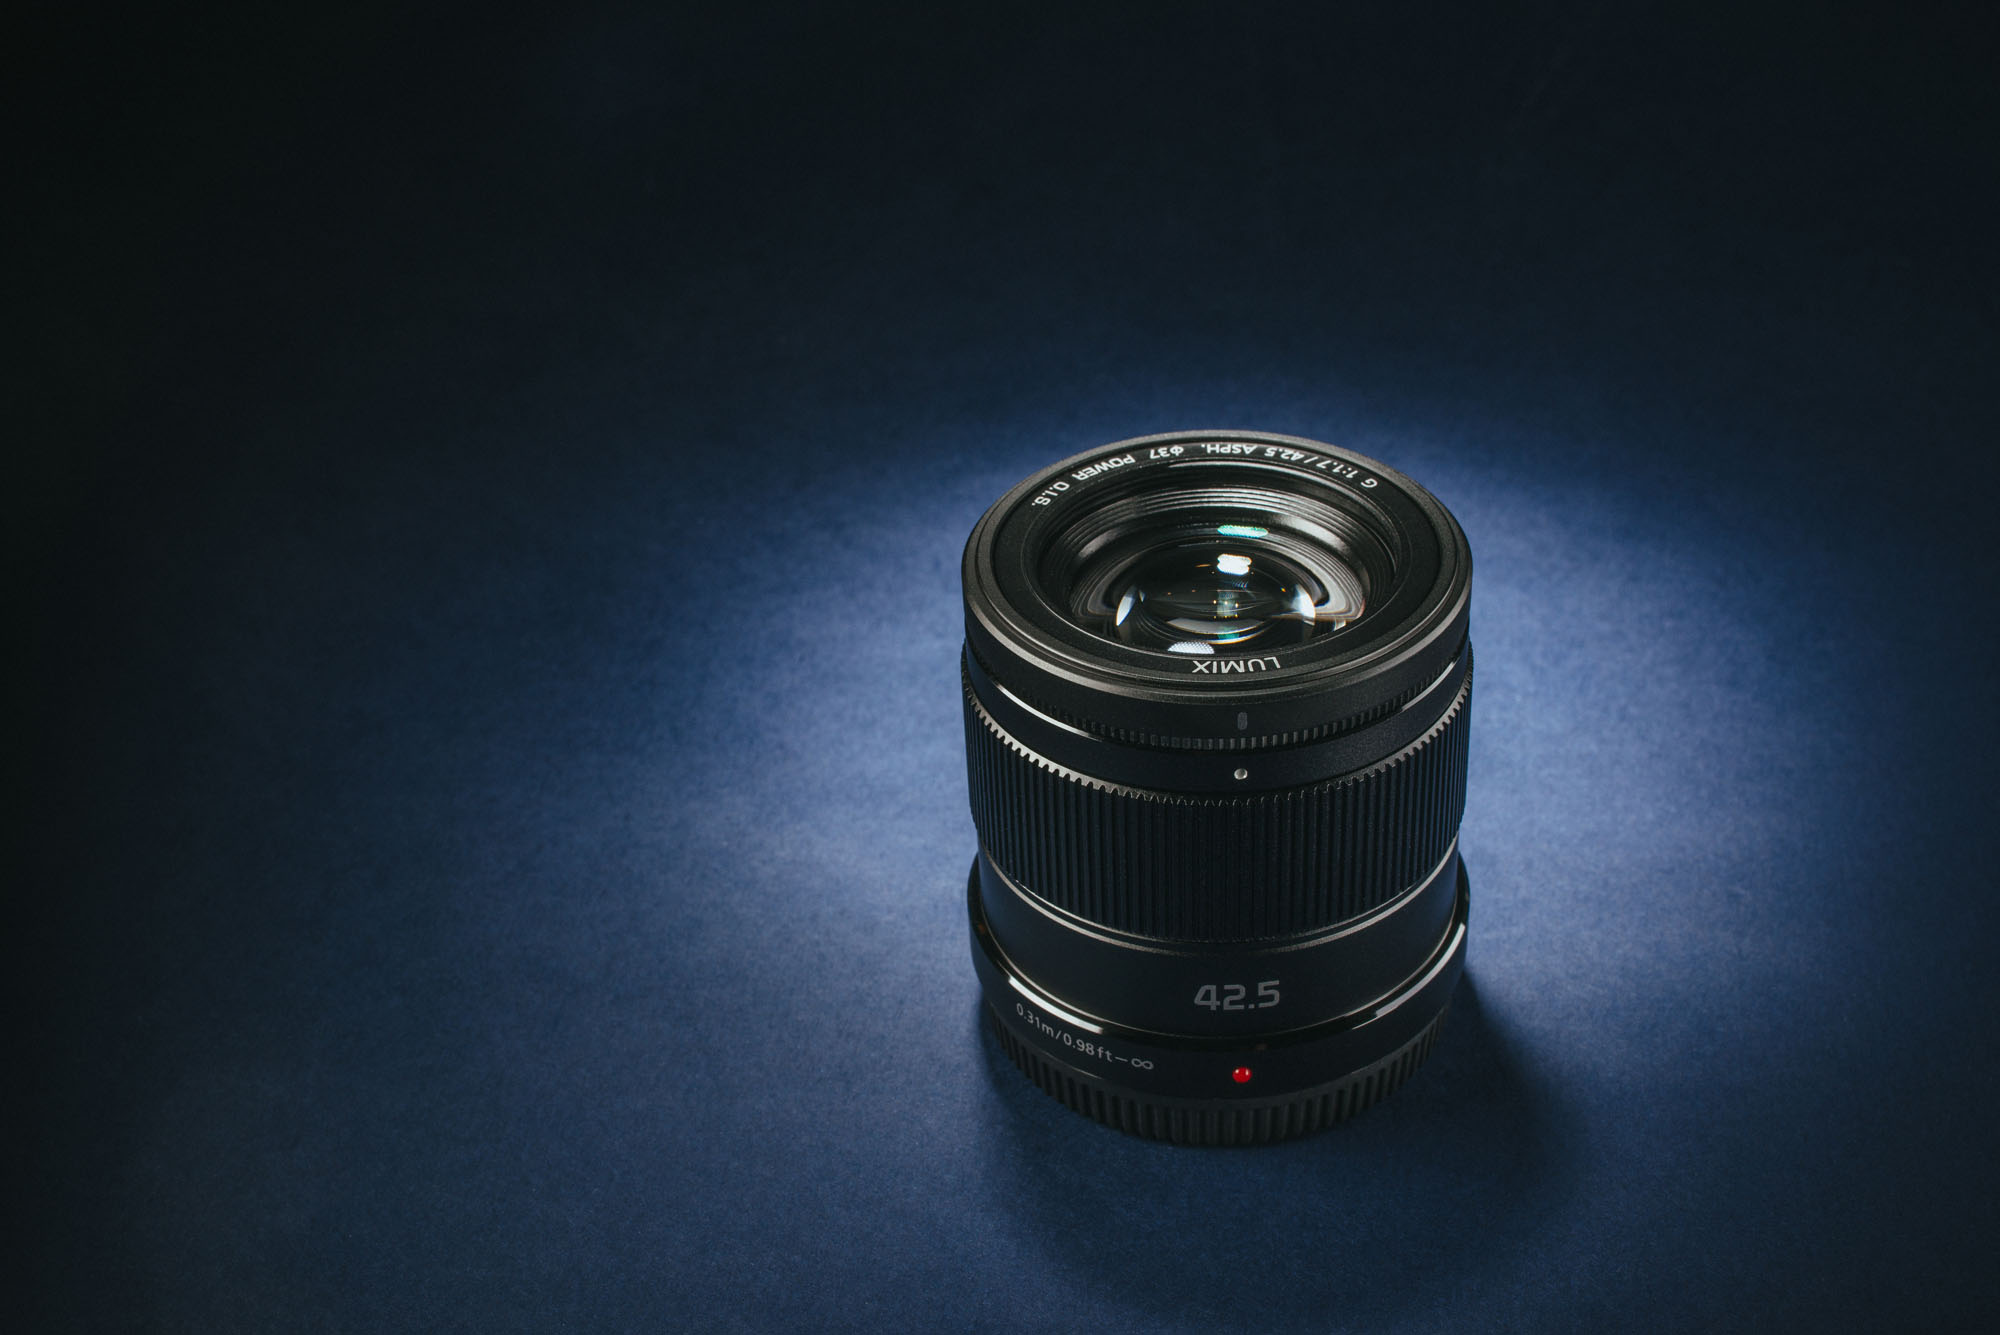 Panasonic LUMIX G 42.5mm f/1.7 Review – Review By Richard